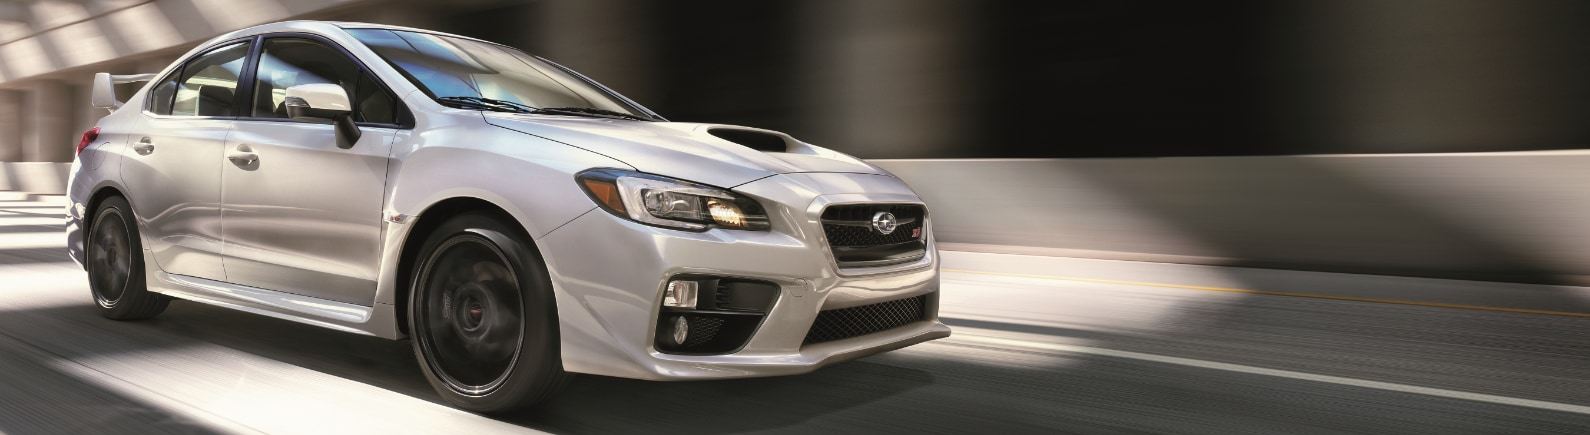 Subaru Wrx Lease Price 2018 2019 New Car Price And Release Date